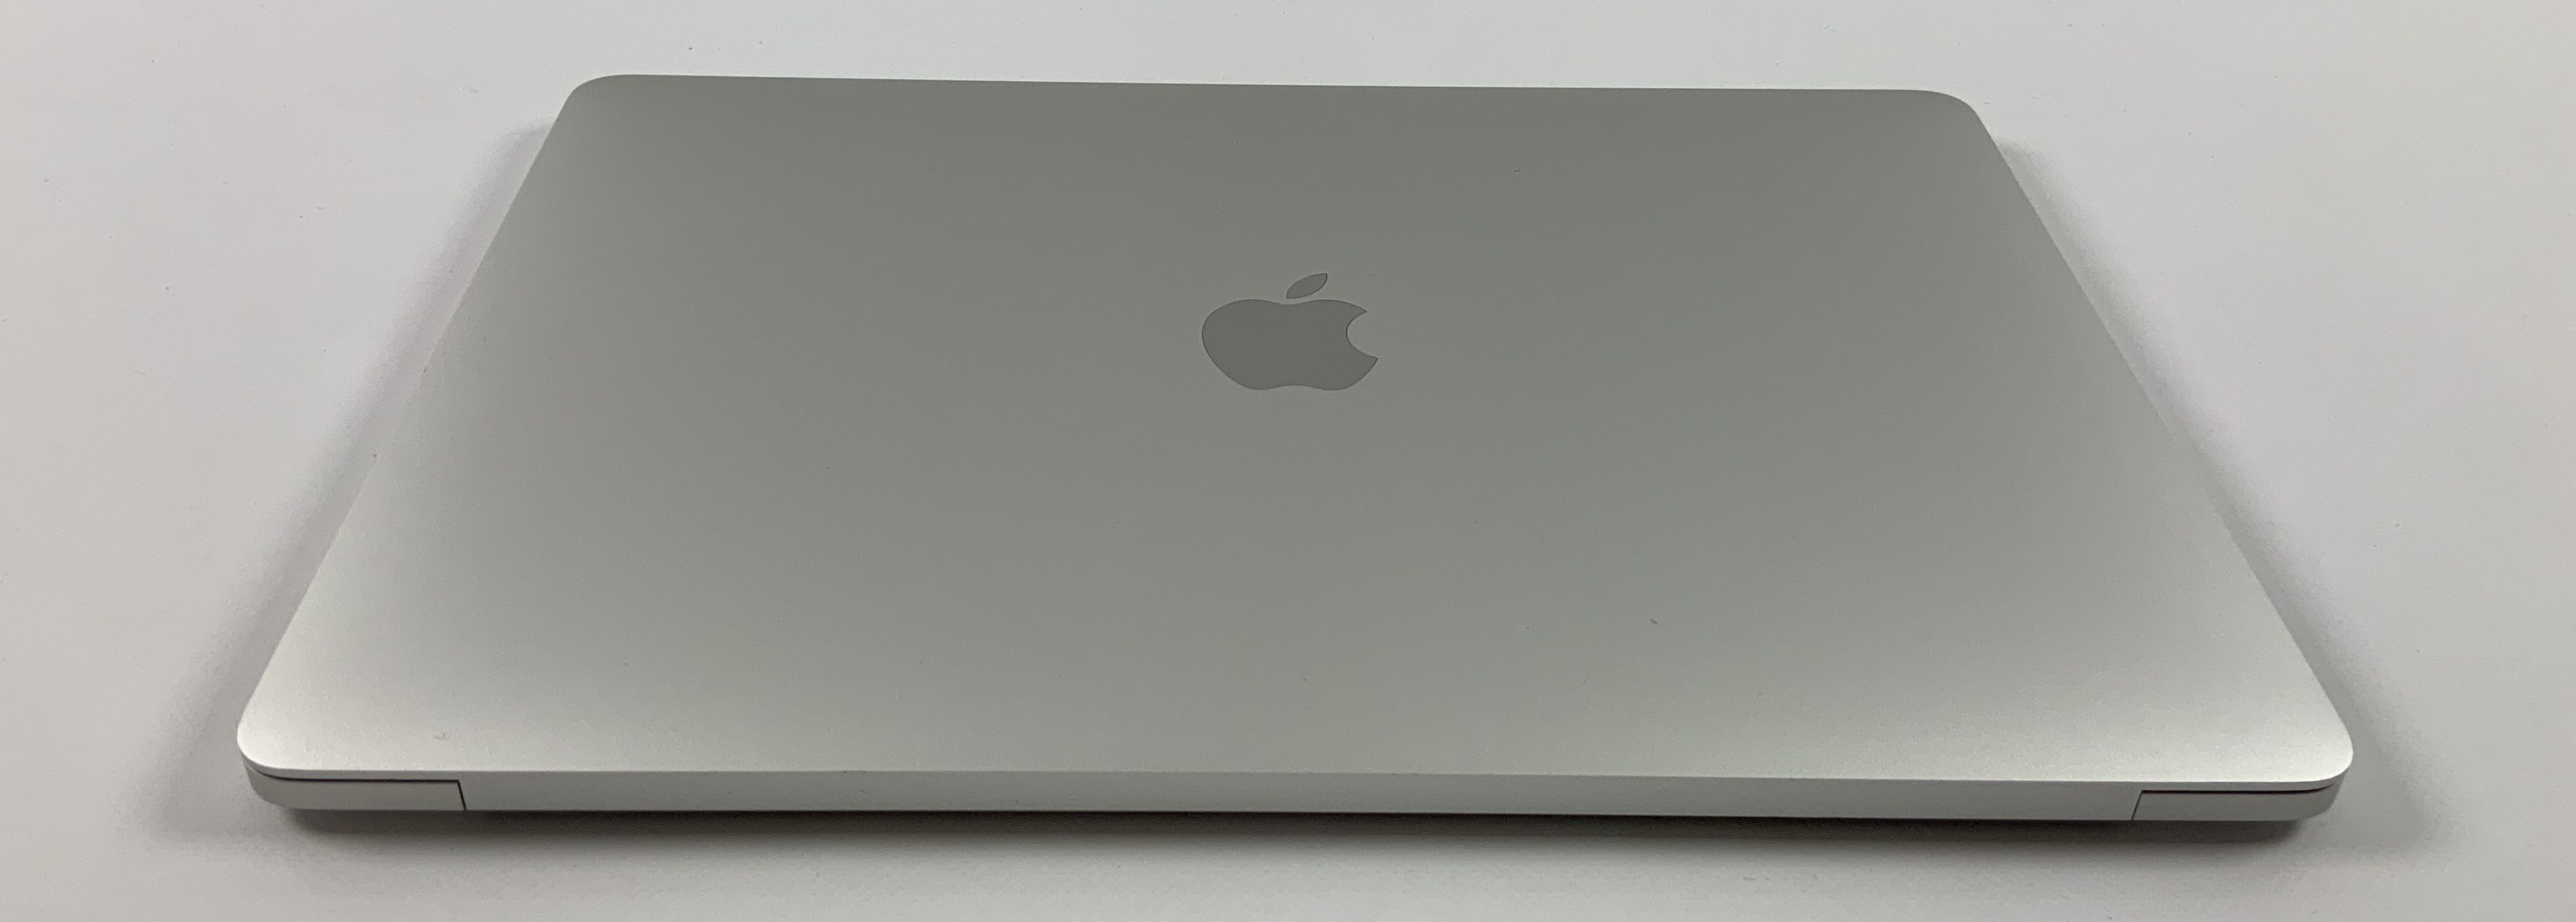 "MacBook Pro 13"" 4TBT Late 2016 (Intel Core i5 2.9 GHz 8 GB RAM 256 GB SSD), Silver, Intel Core i5 2.9 GHz, 8 GB RAM, 256 GB SSD, imagen 2"